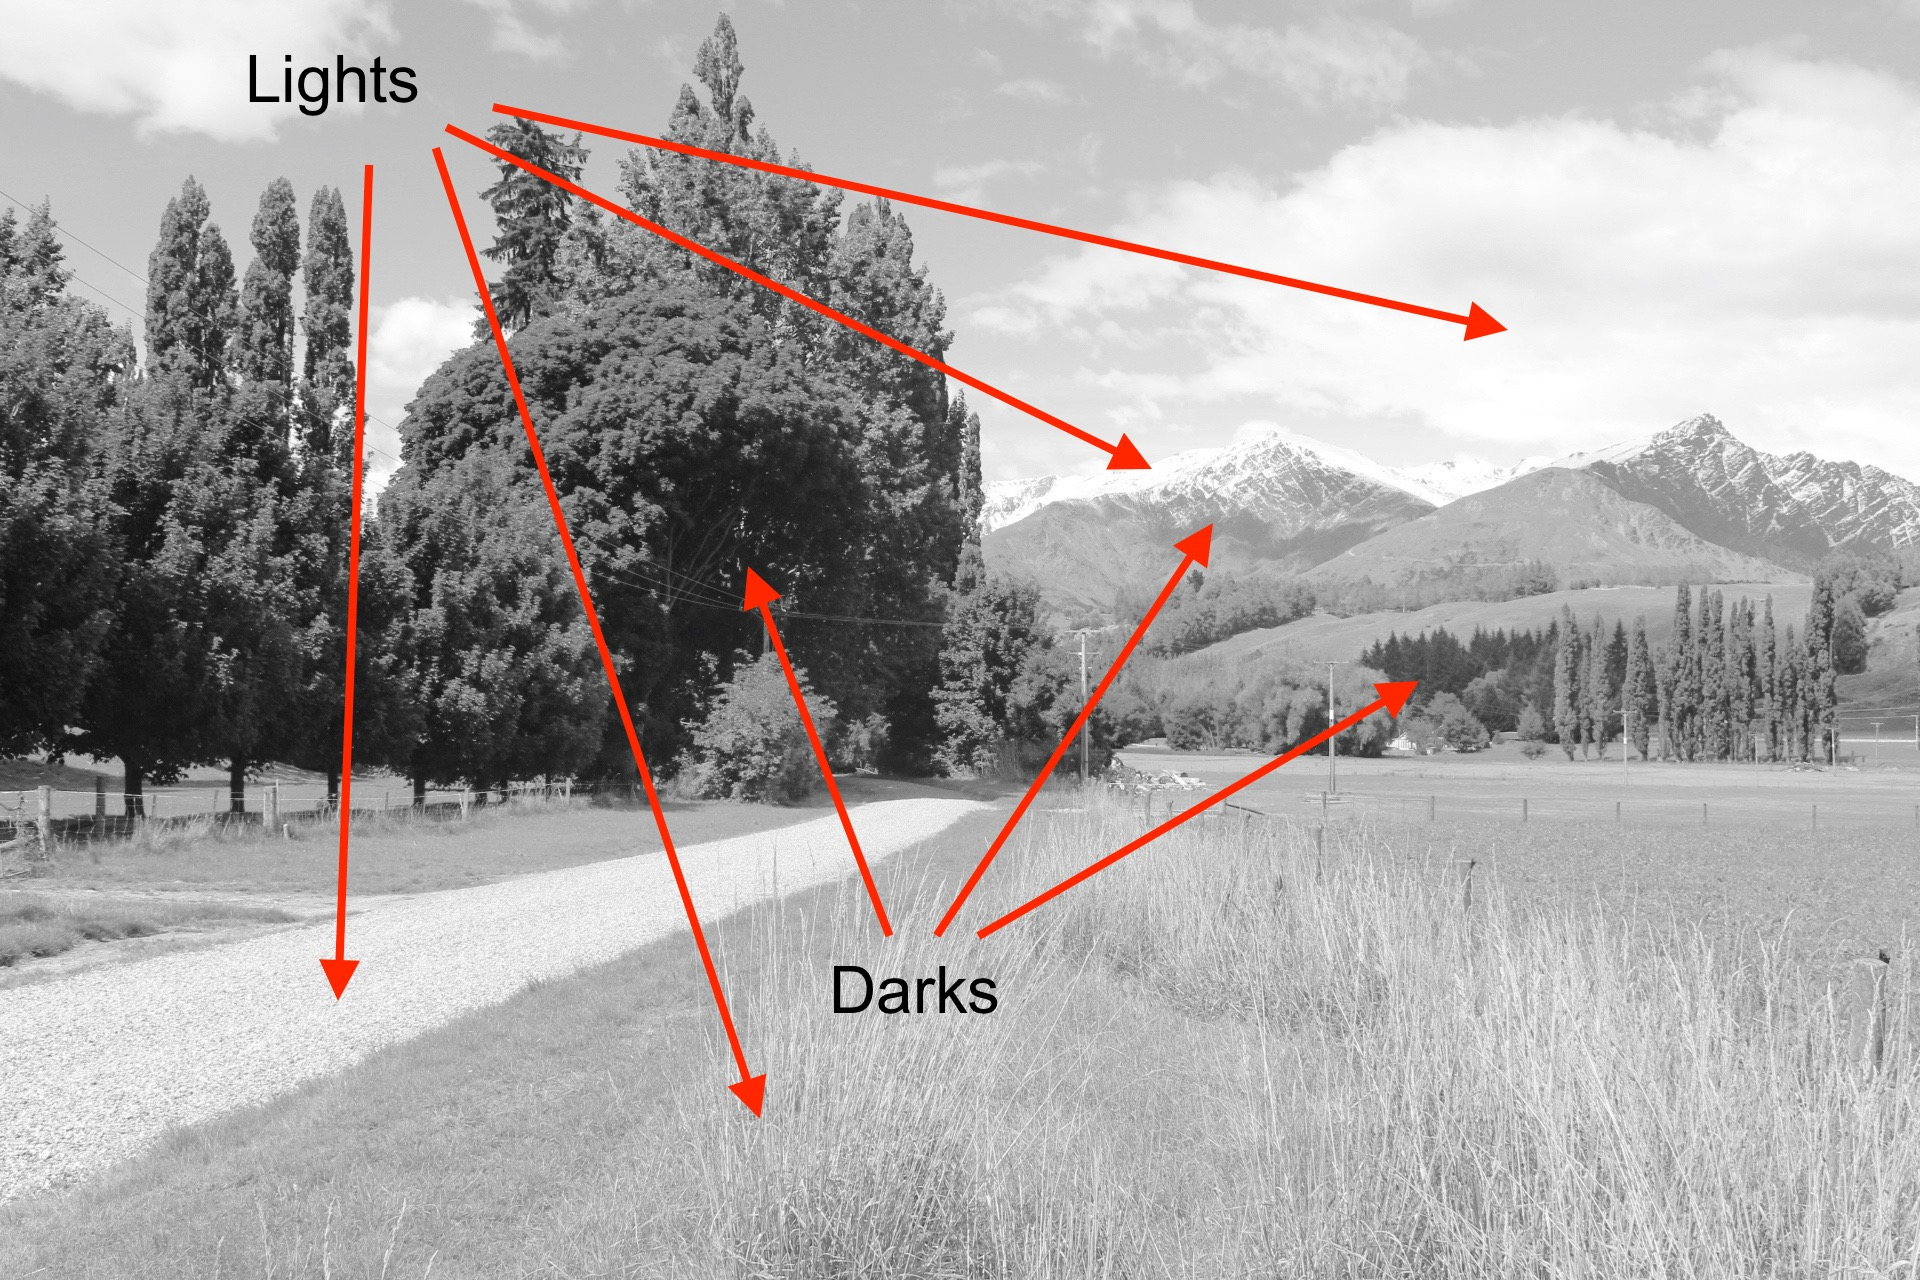 Trees and Mountains - Tonality - Darks and Lights.jpg